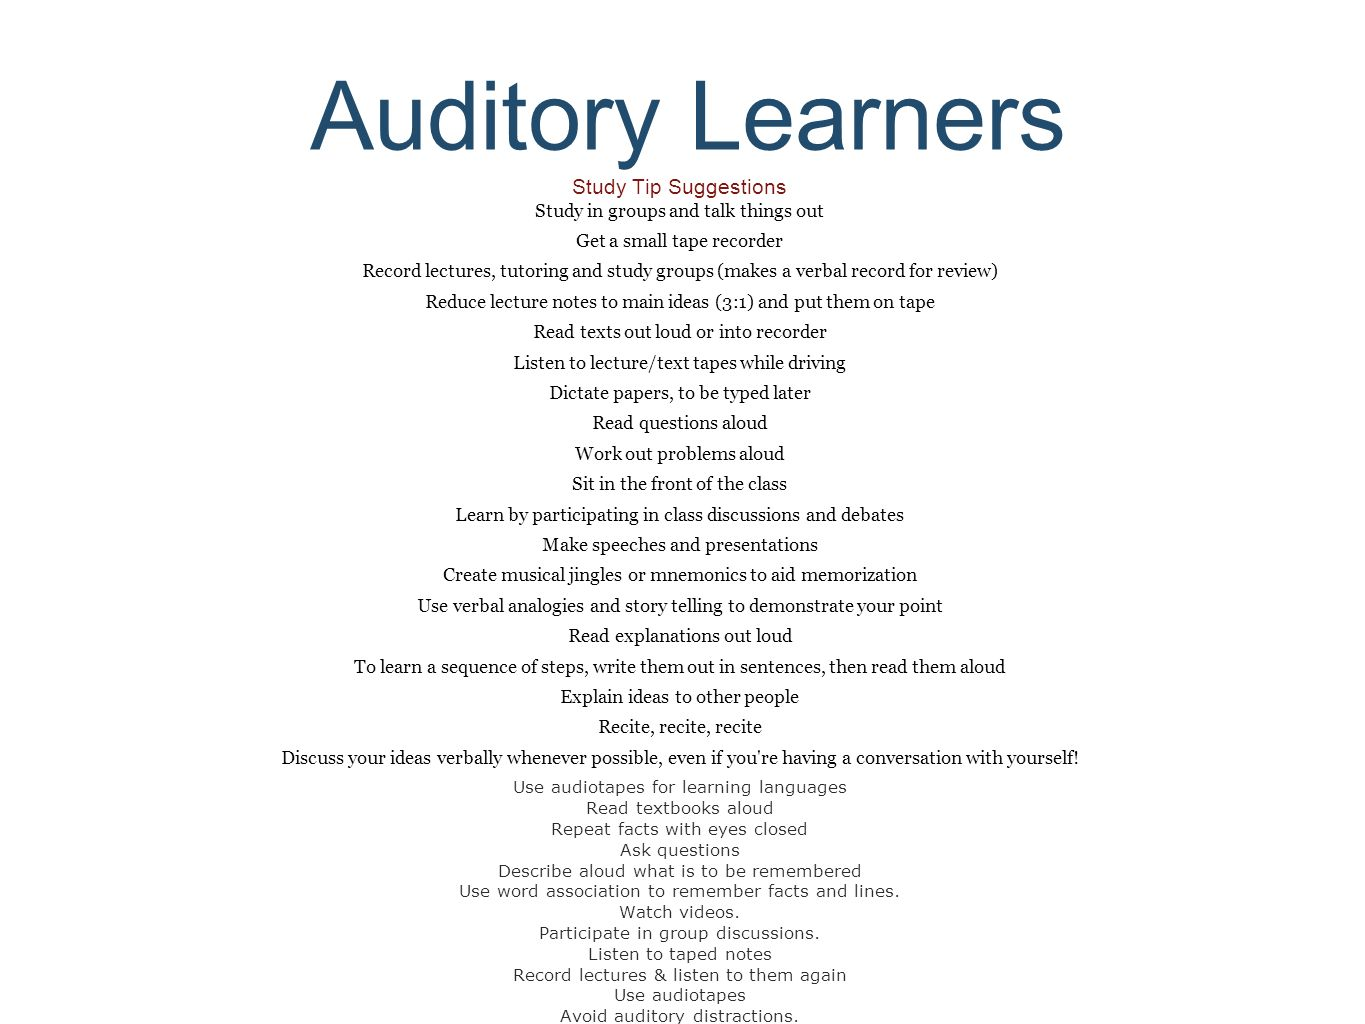 essay on auditory learning style Paper title: the effect of visual, auditory, and kinaesthetic learning styles on language teaching abbas pourhossein gilakjani school of educational studies, usm.